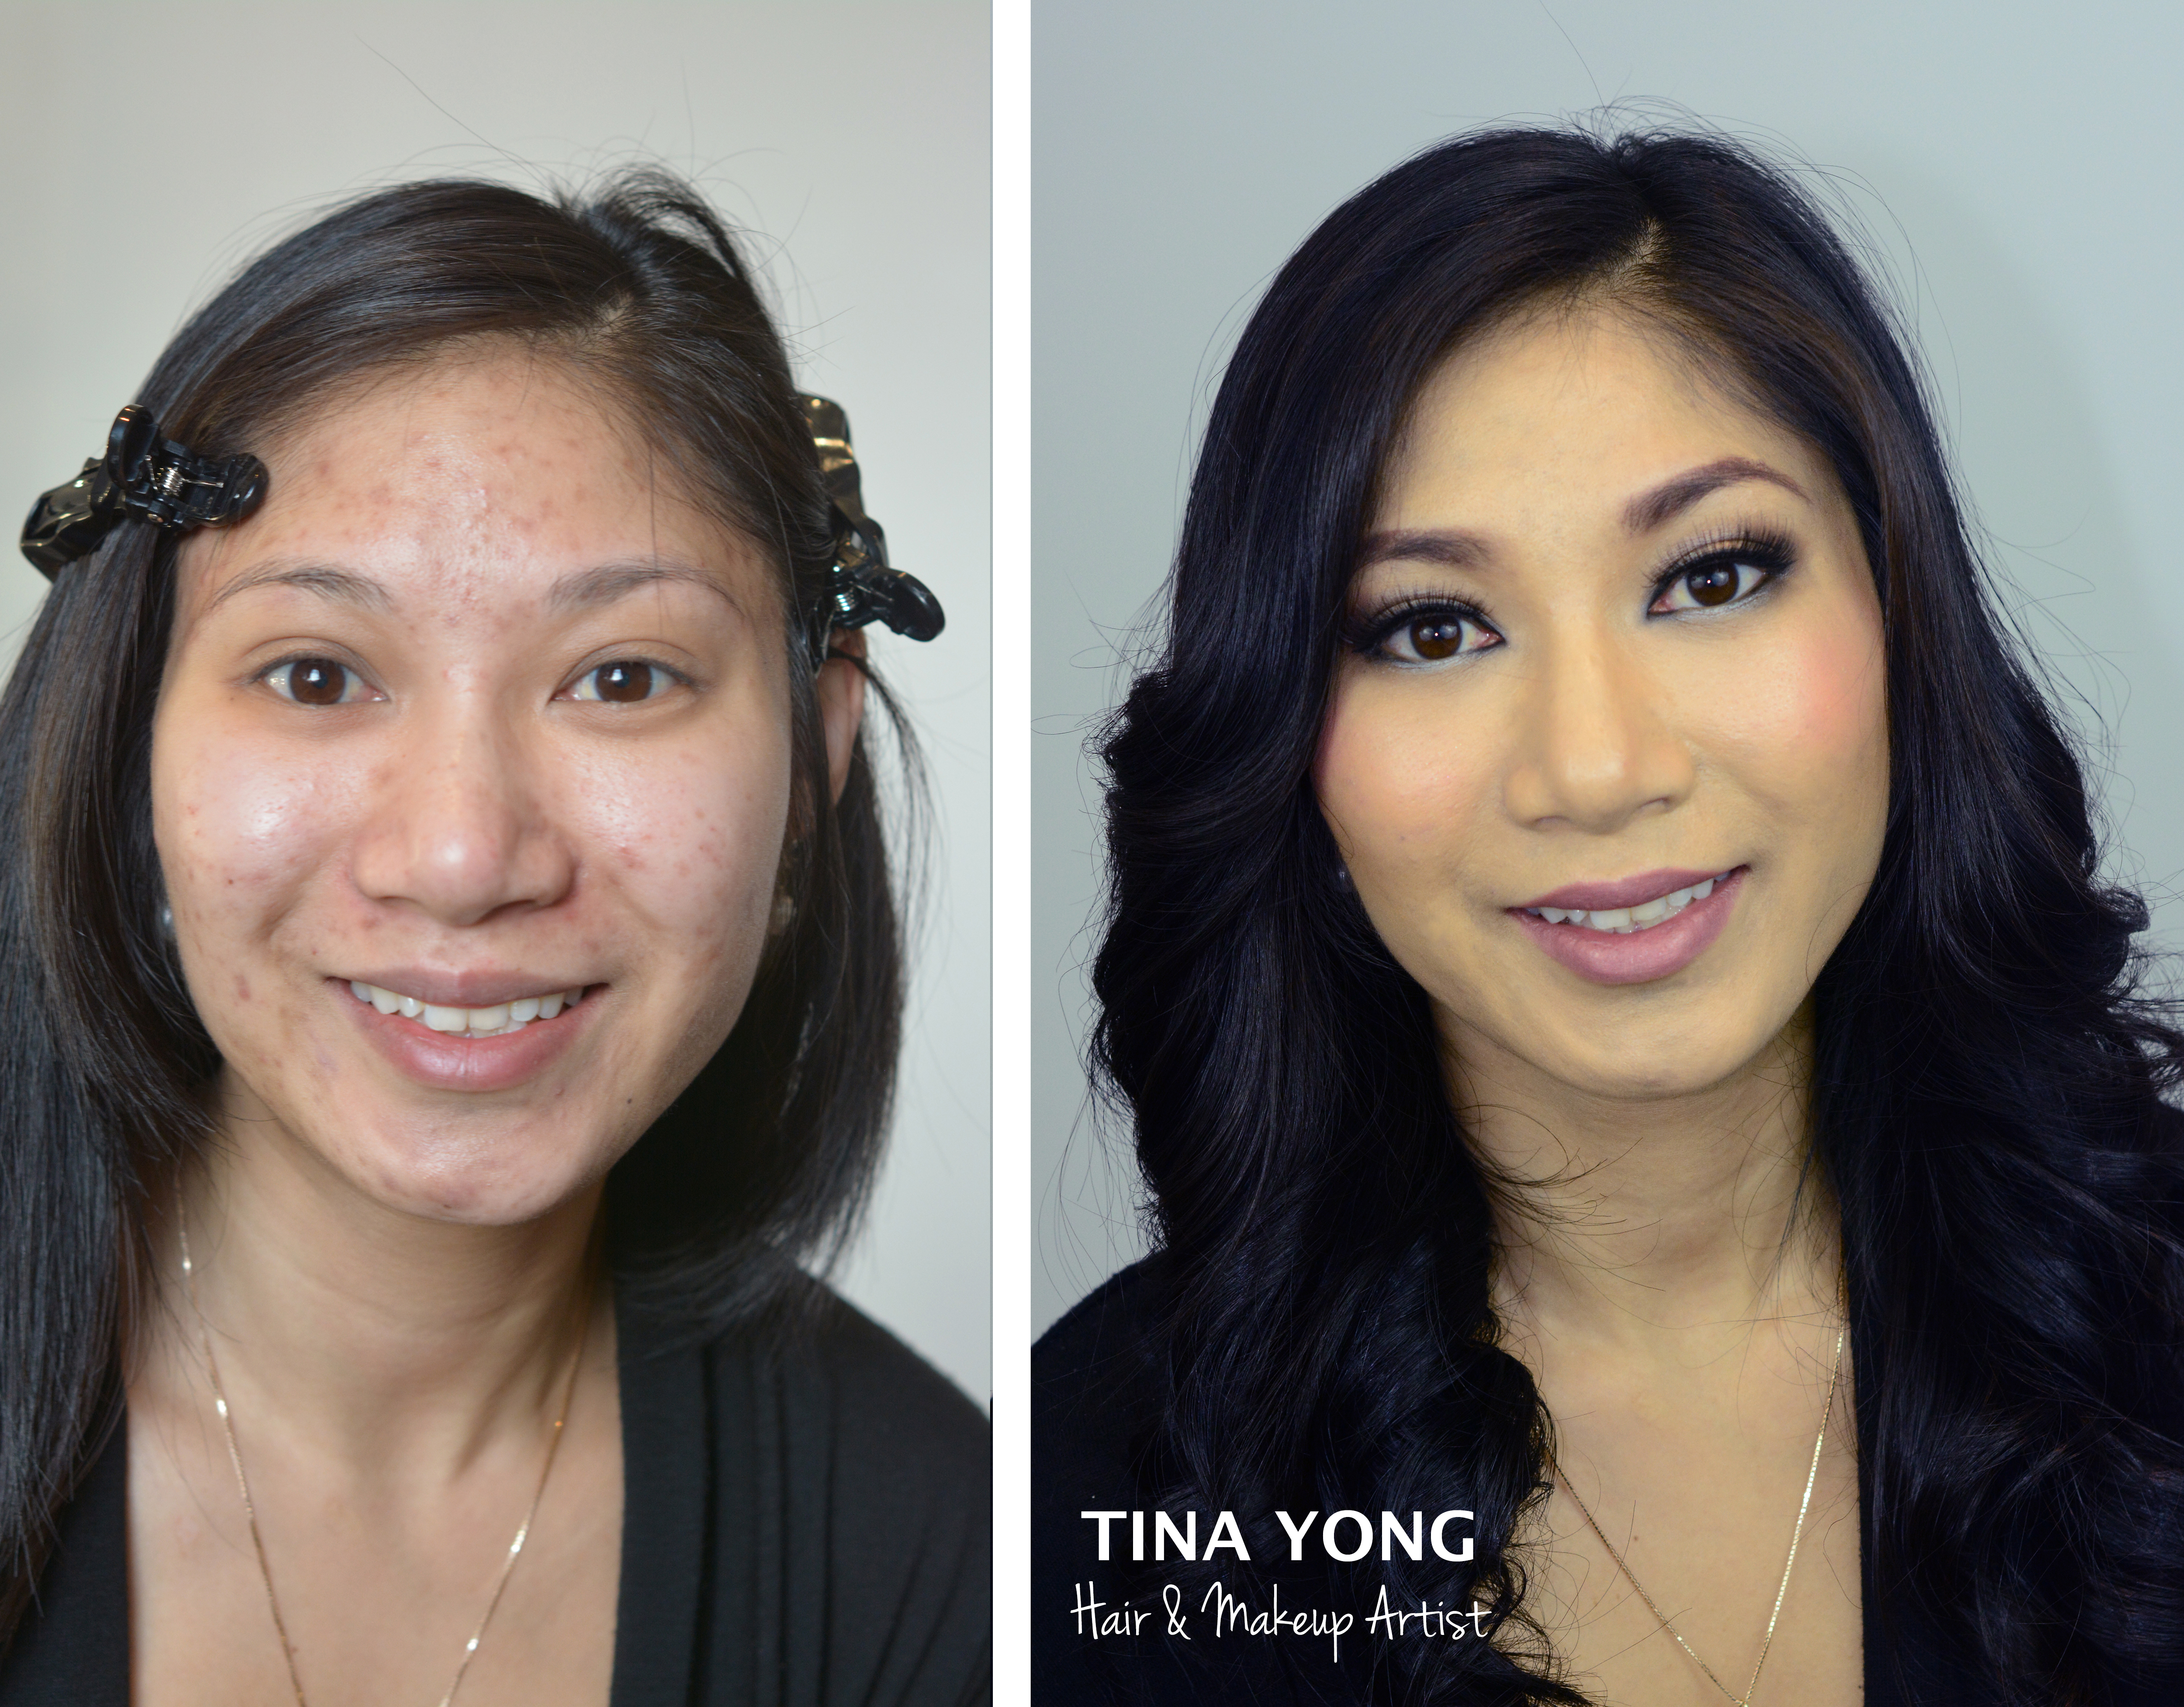 Makeup by Tina Yong, Sydney Makeup Artist